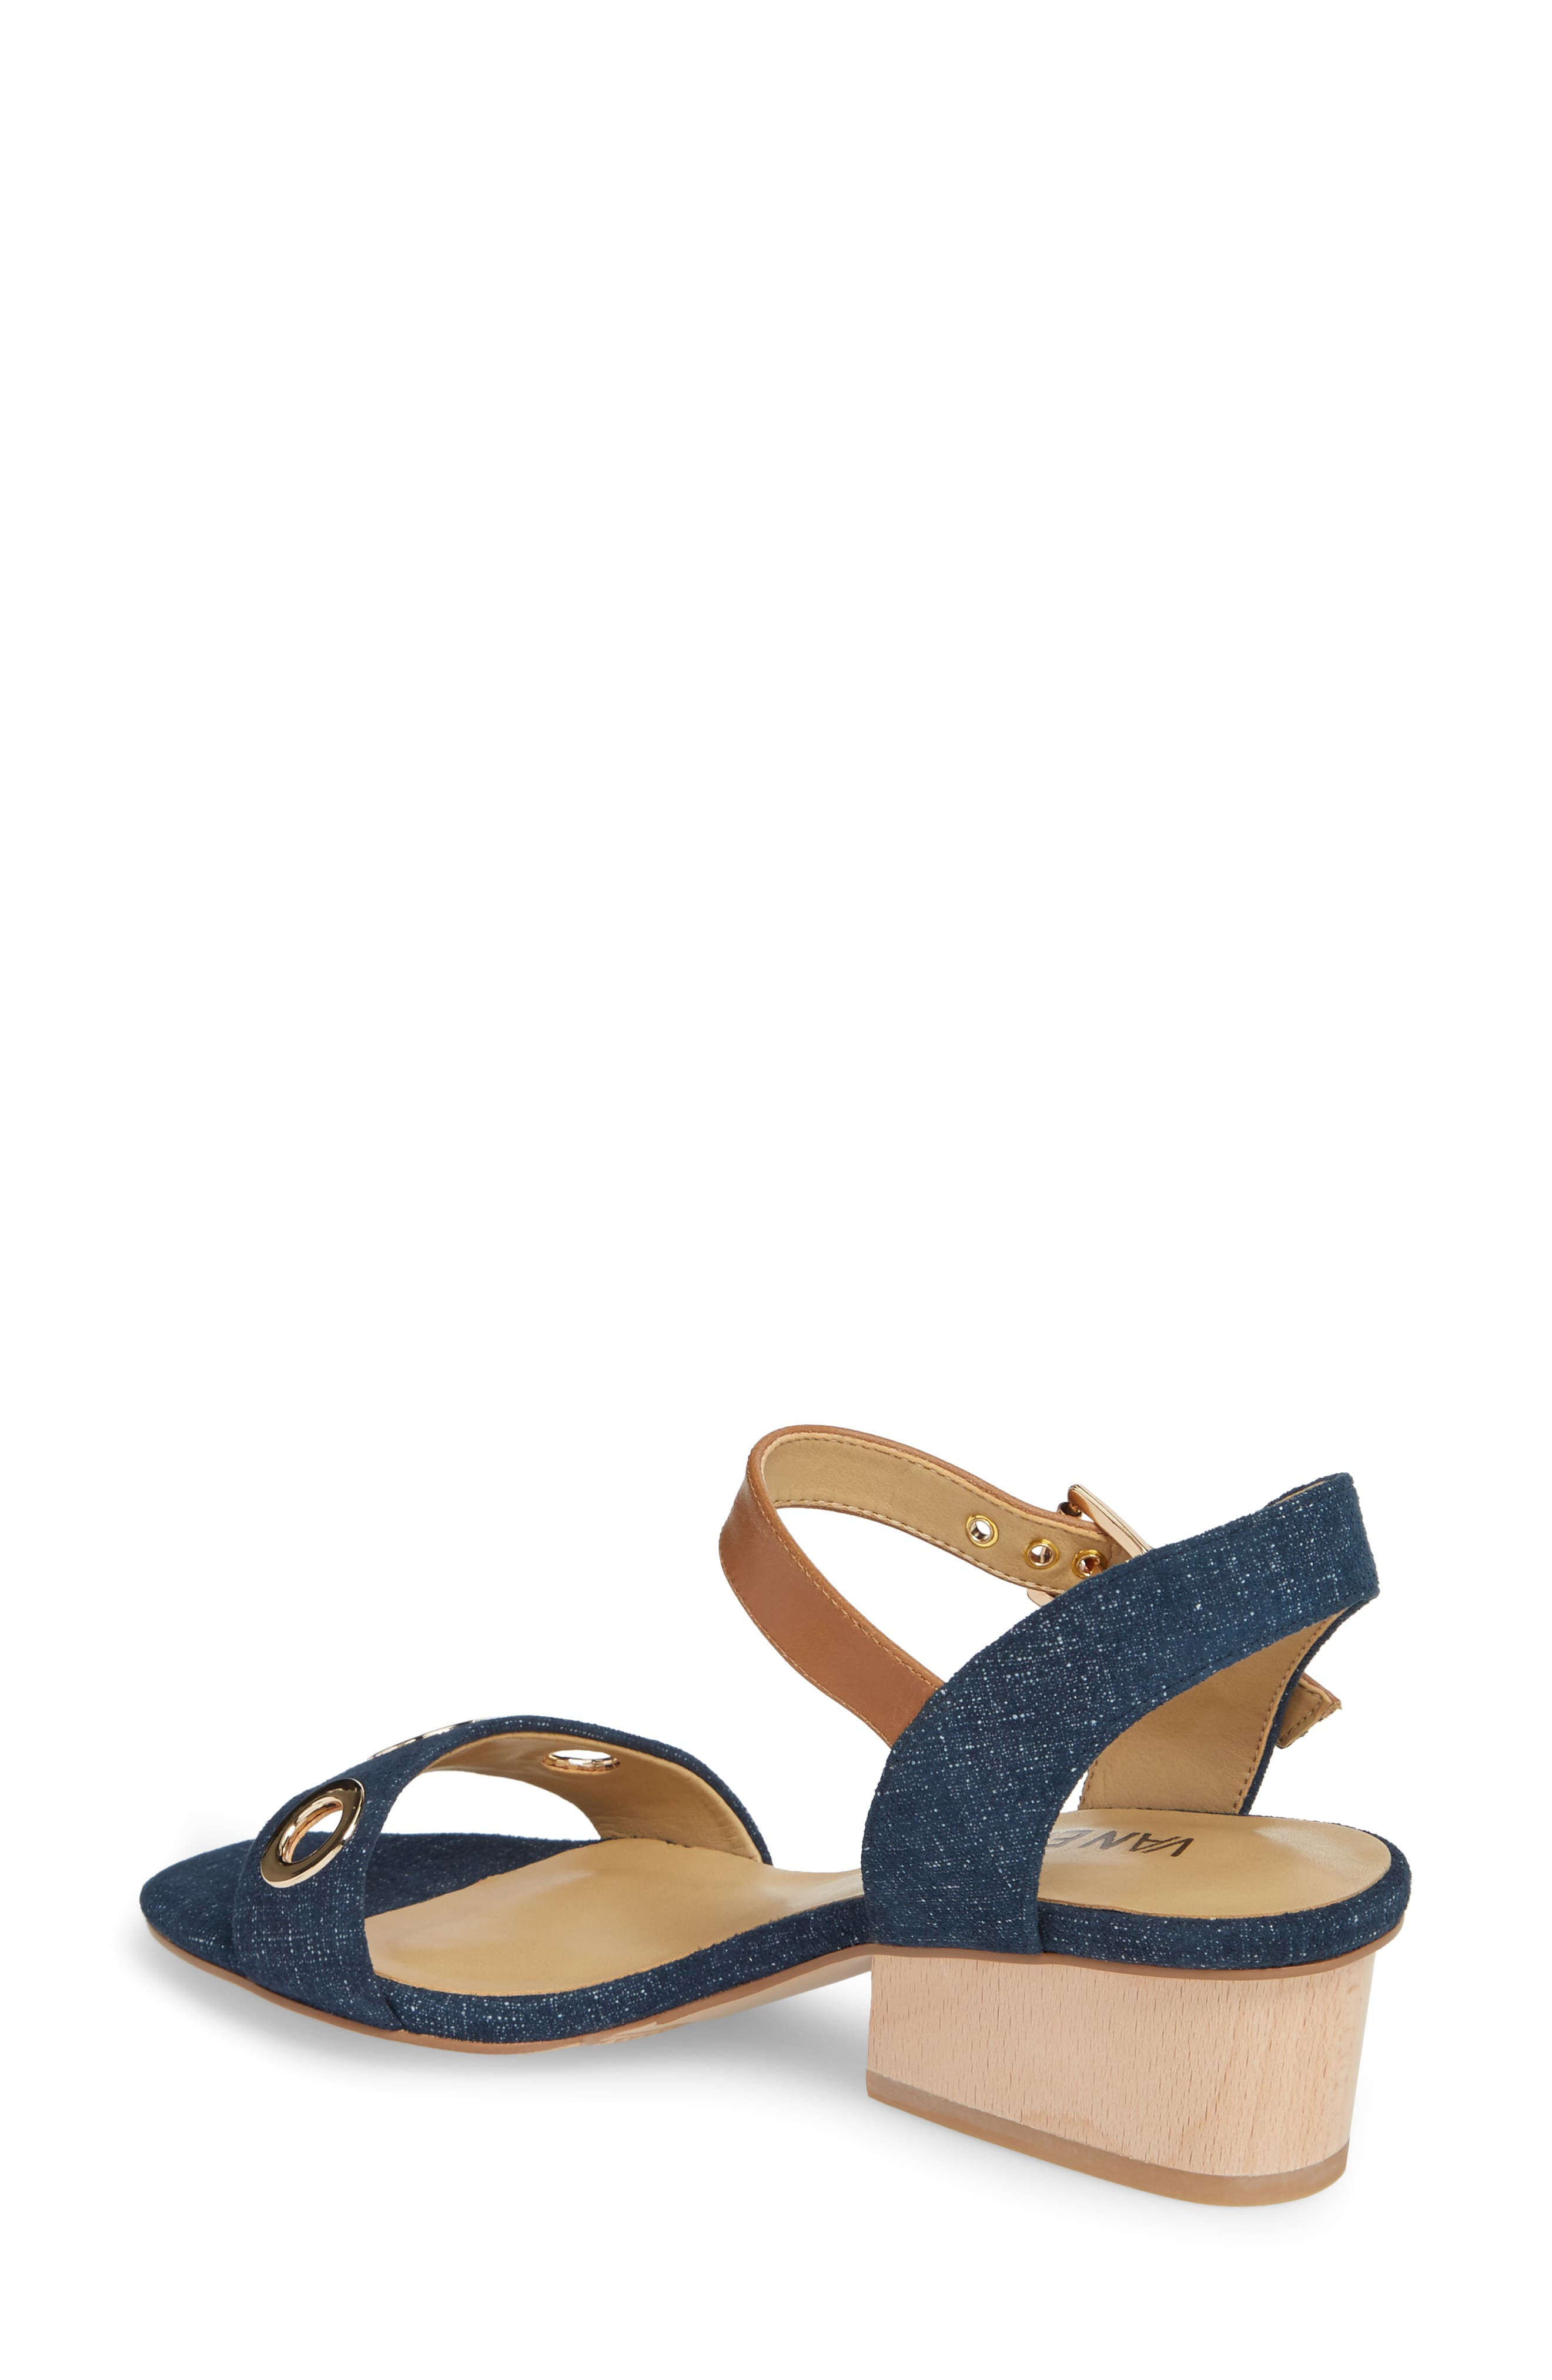 Chaddy Sandal,                             Alternate thumbnail 2, color,                             Jeans Printed Suede